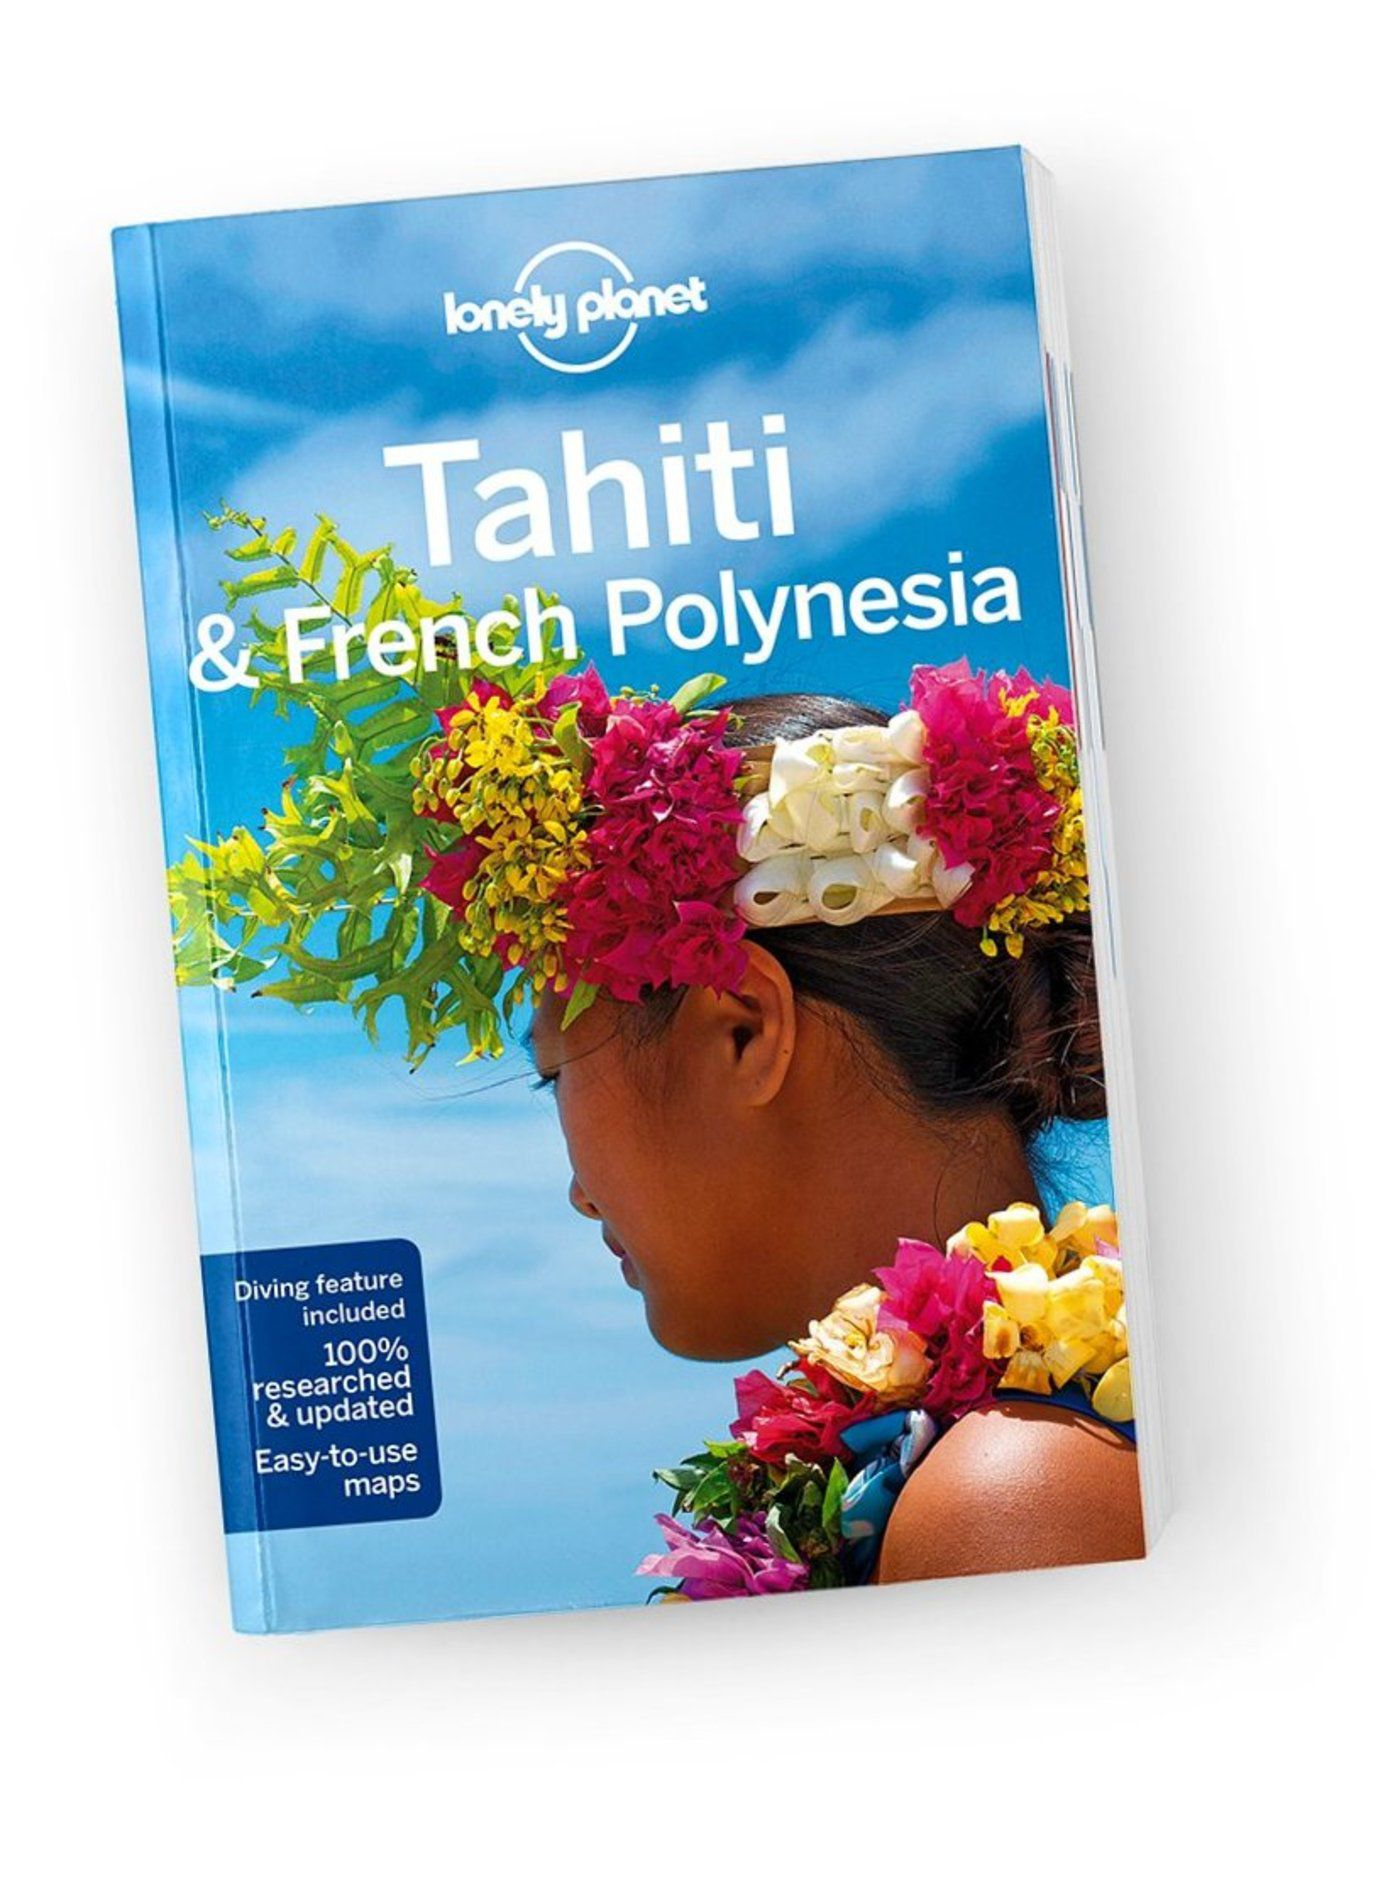 Tahiti & French Polynesia travel guide